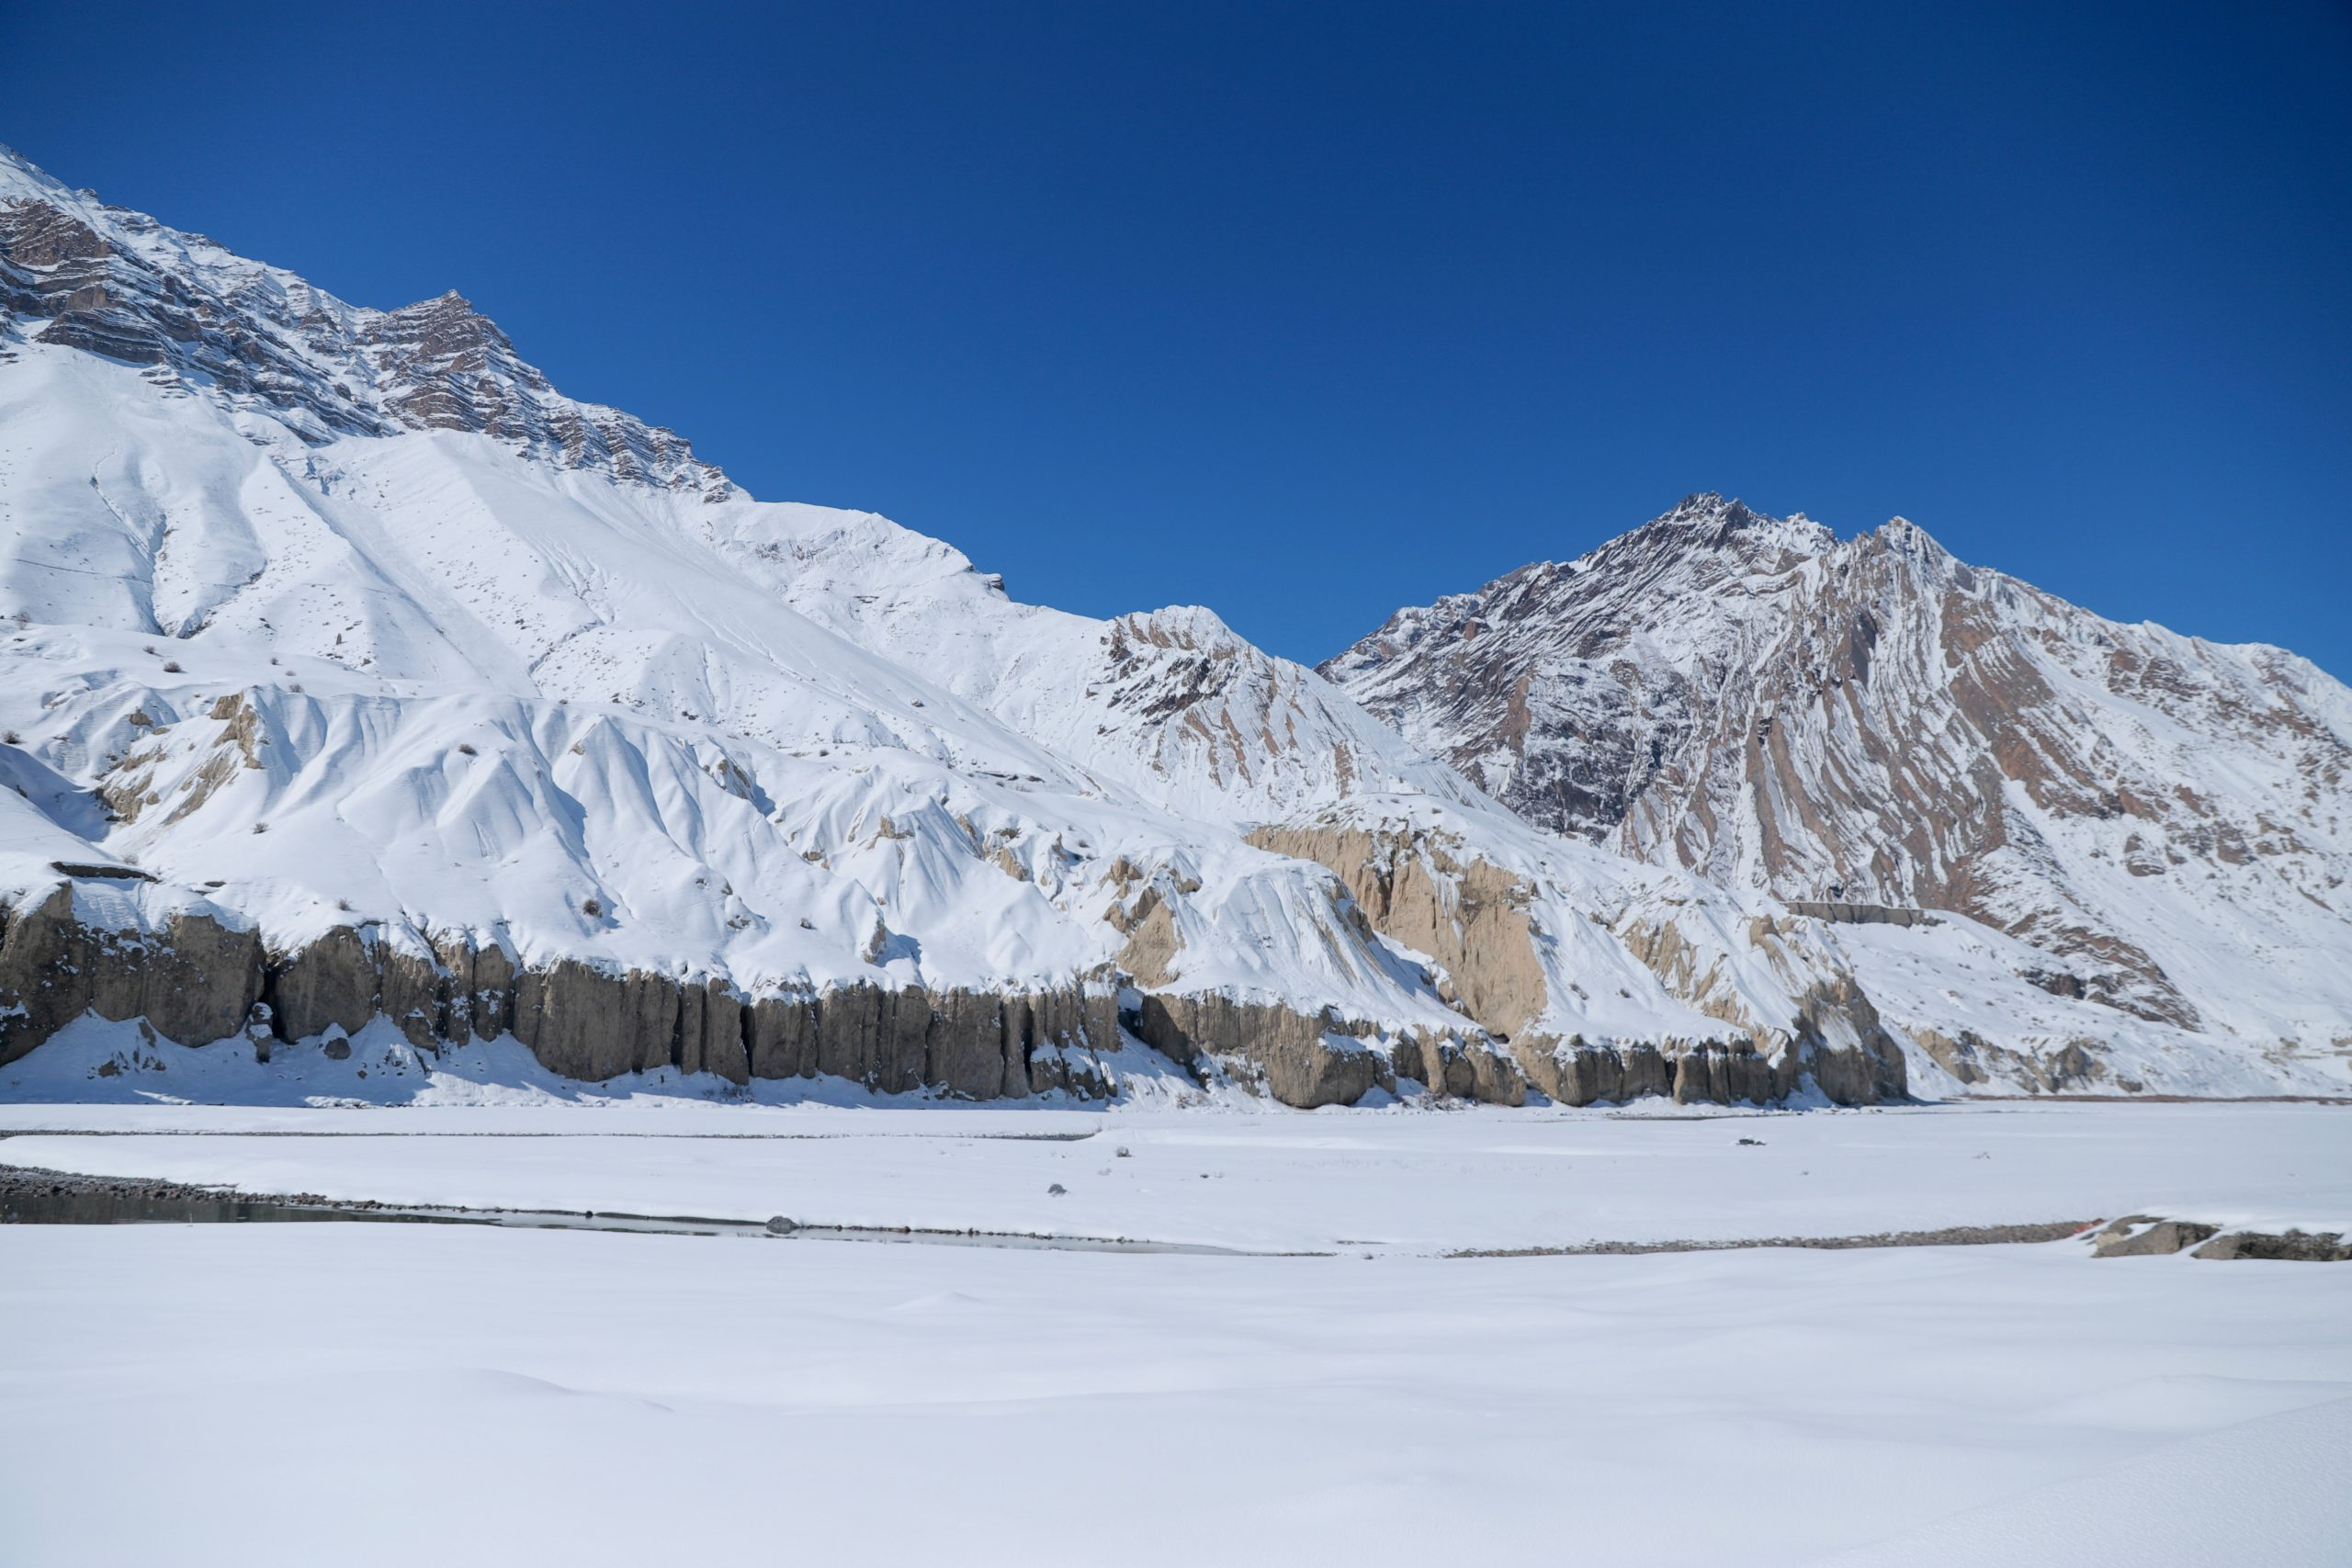 Lingti Winter Roadtrip In Spiti Valley